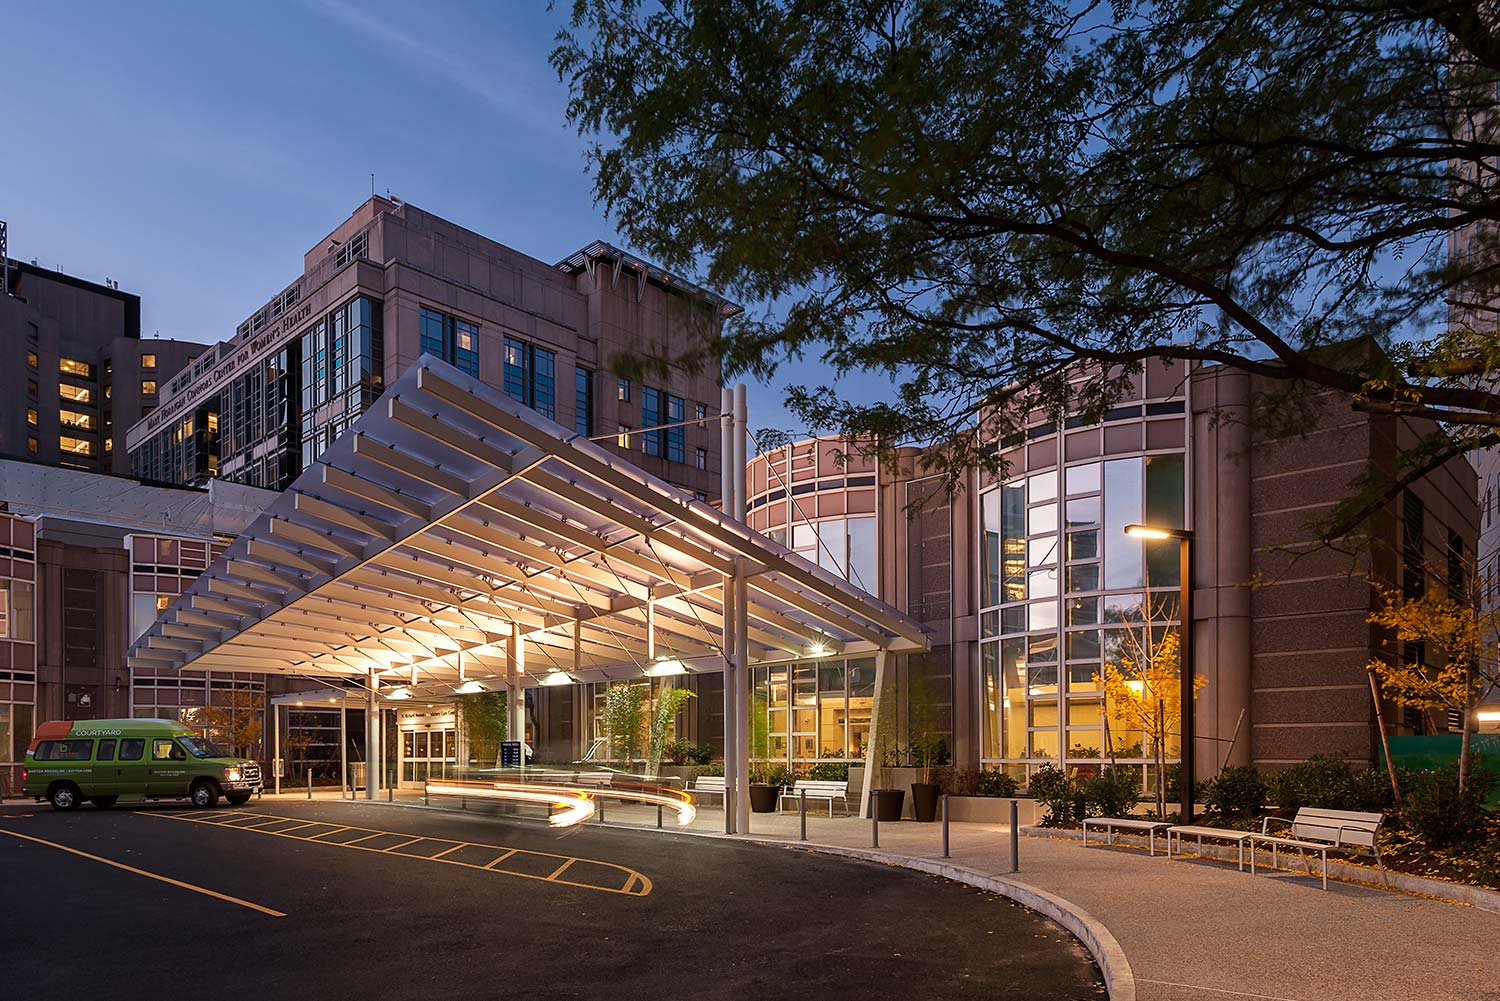 BWH_45-Francis-Canopy-Architecture_drivecourt_hospital-campus_ginkgo-fall_Klopfer-Martin.jpg